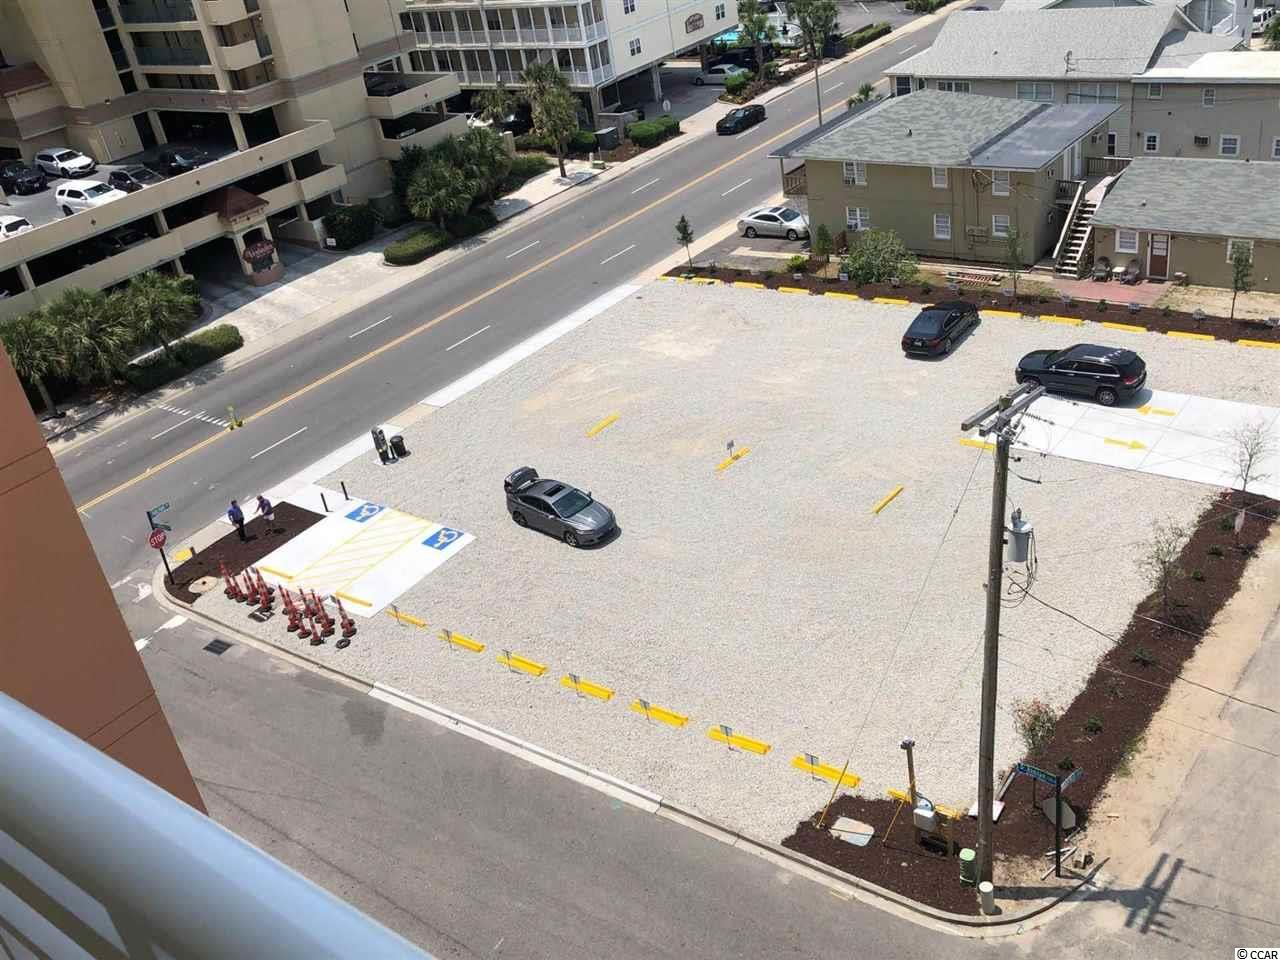 Rare opportunity to purchase a paid  parking Lot  with 30 Parking spots in North Myrtle Beach across from the Wyndham.